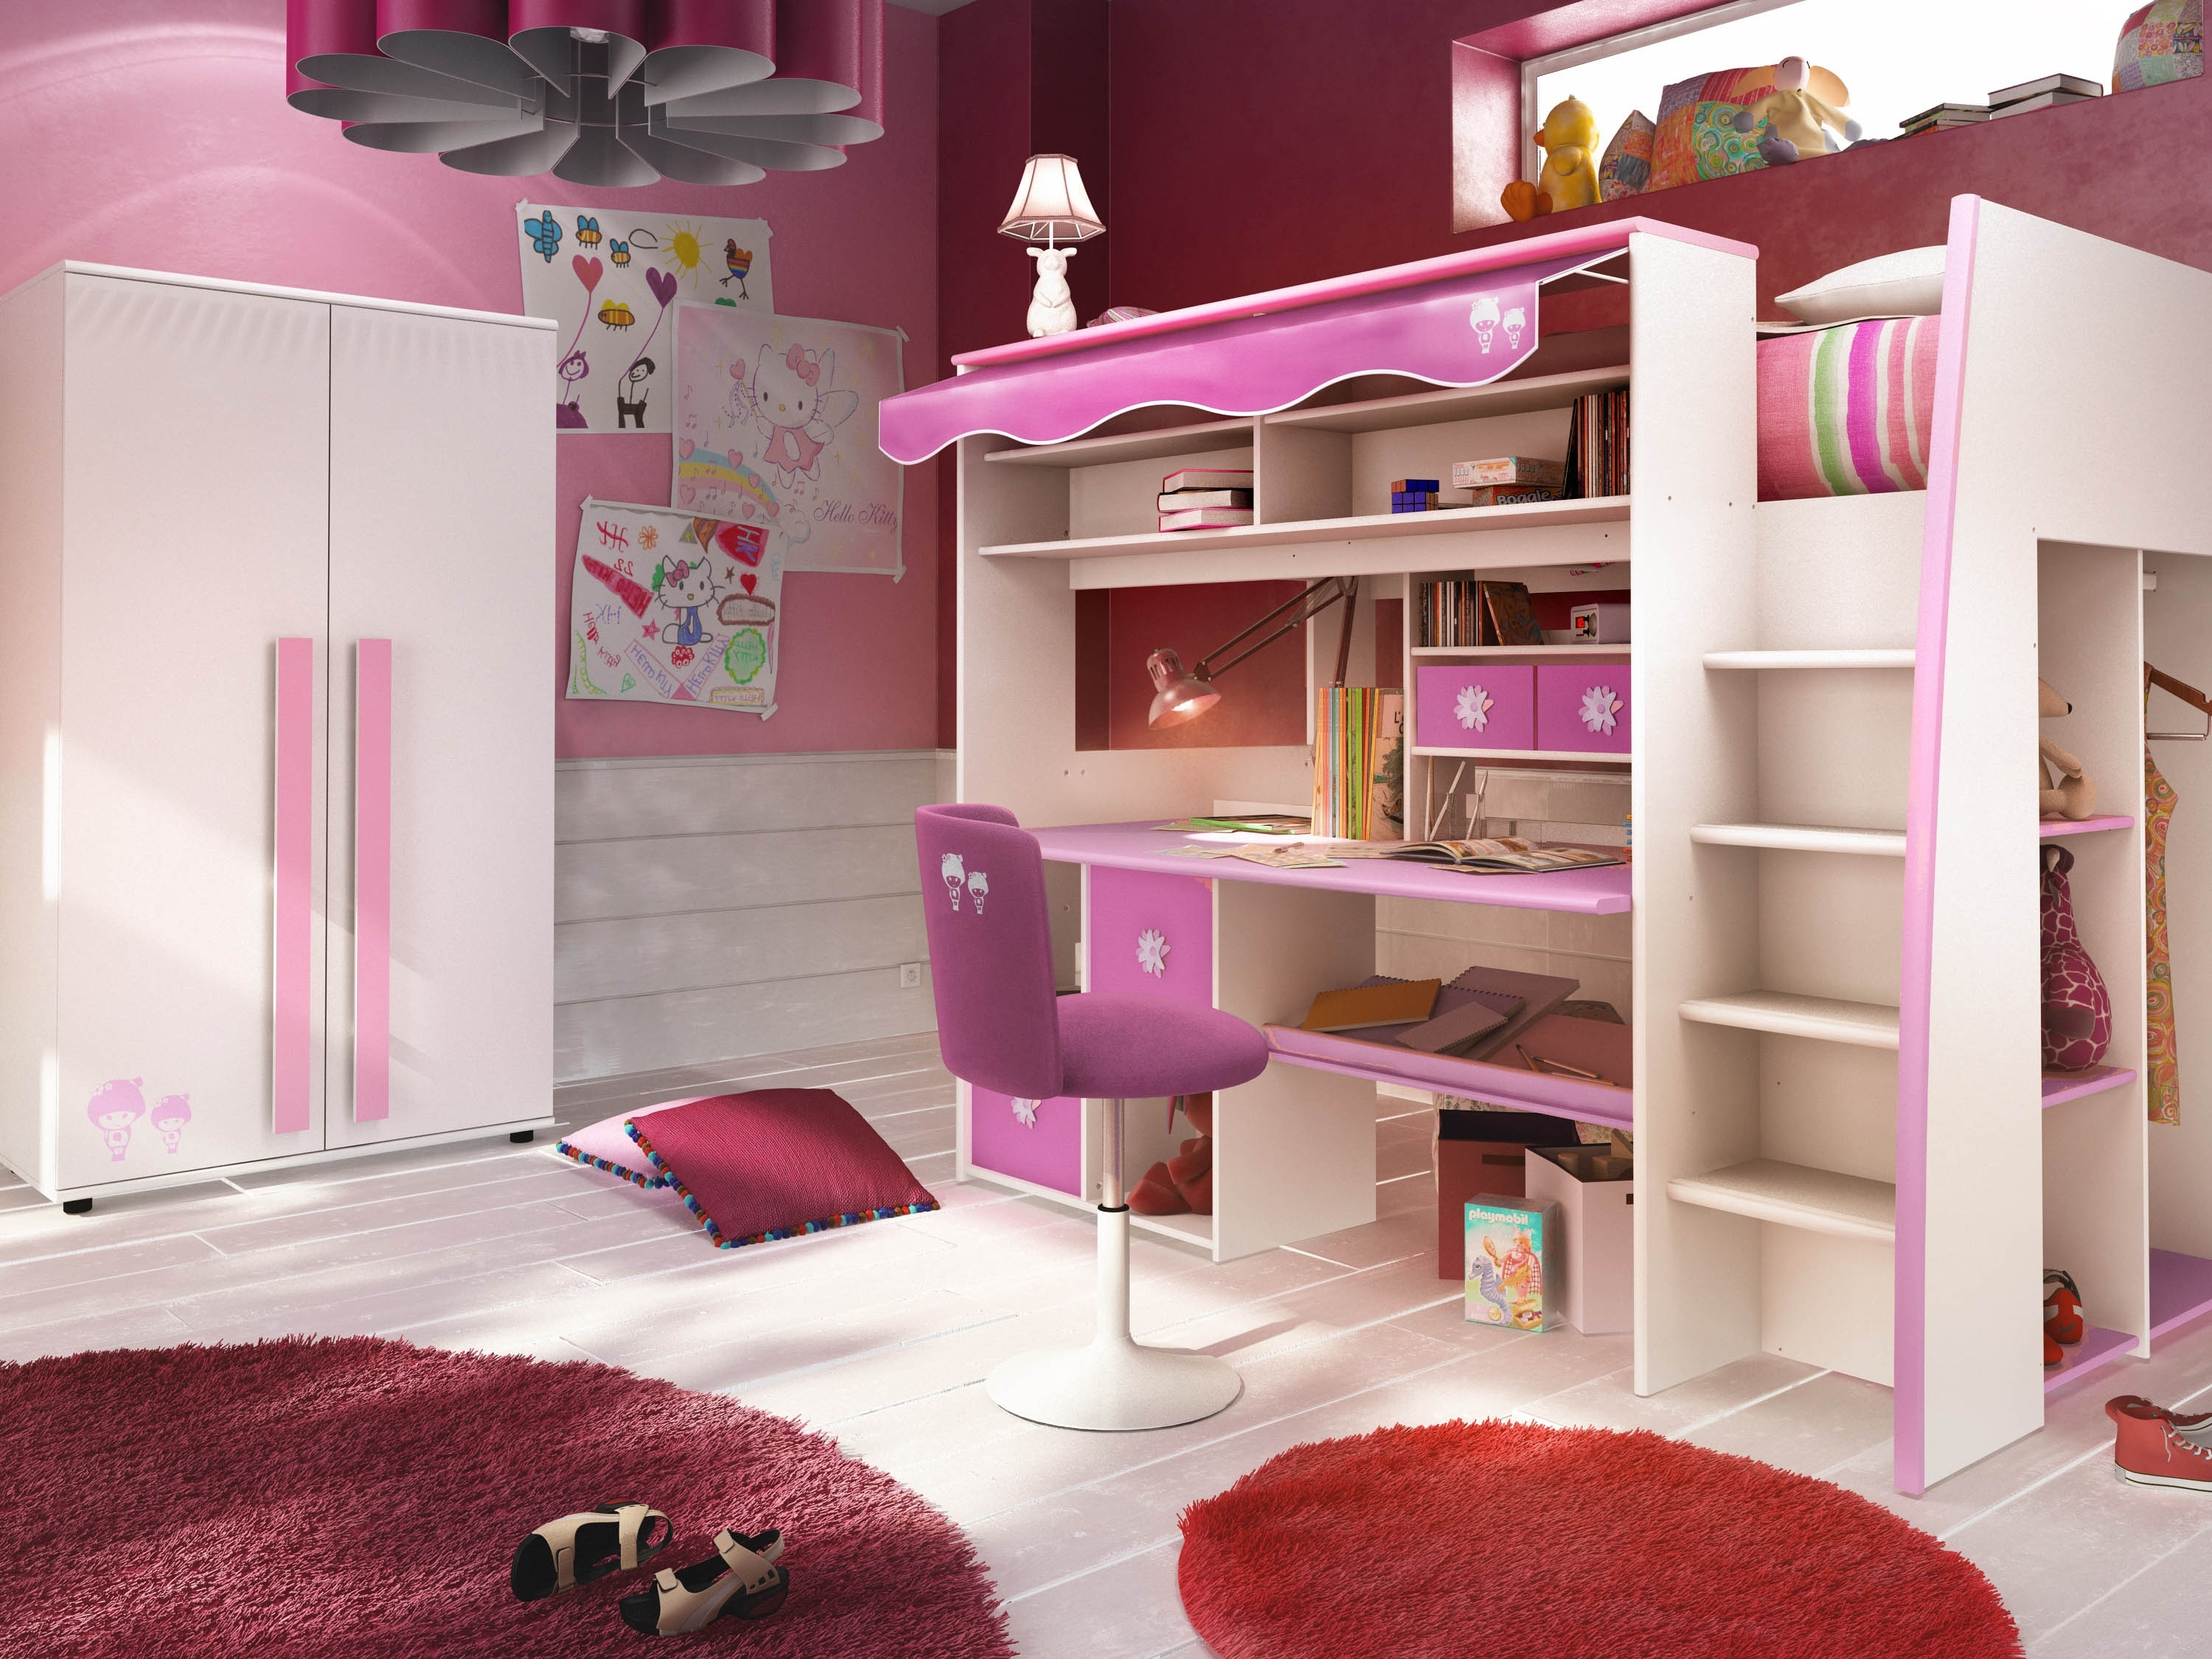 chambre enfant miliboo lit mezzanine enfant rose et blanc marchande prix 429 00 euros. Black Bedroom Furniture Sets. Home Design Ideas